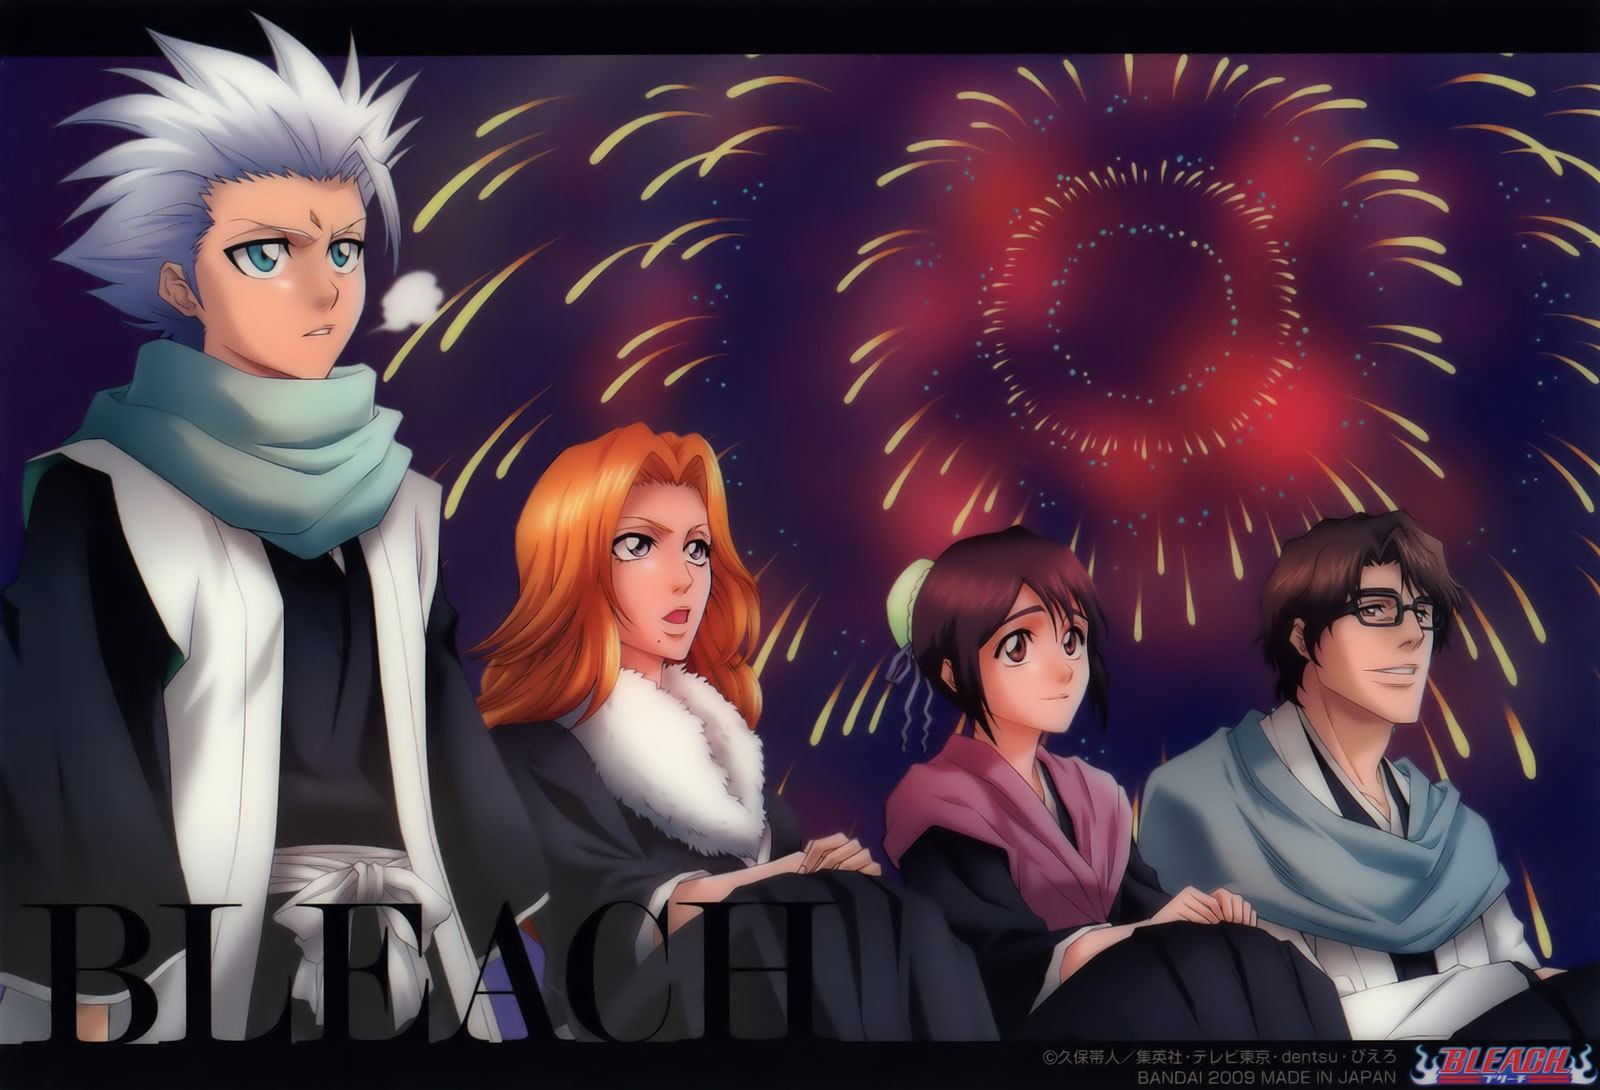 bleach fireworks Matsumoto rangiku HD Wallpaper